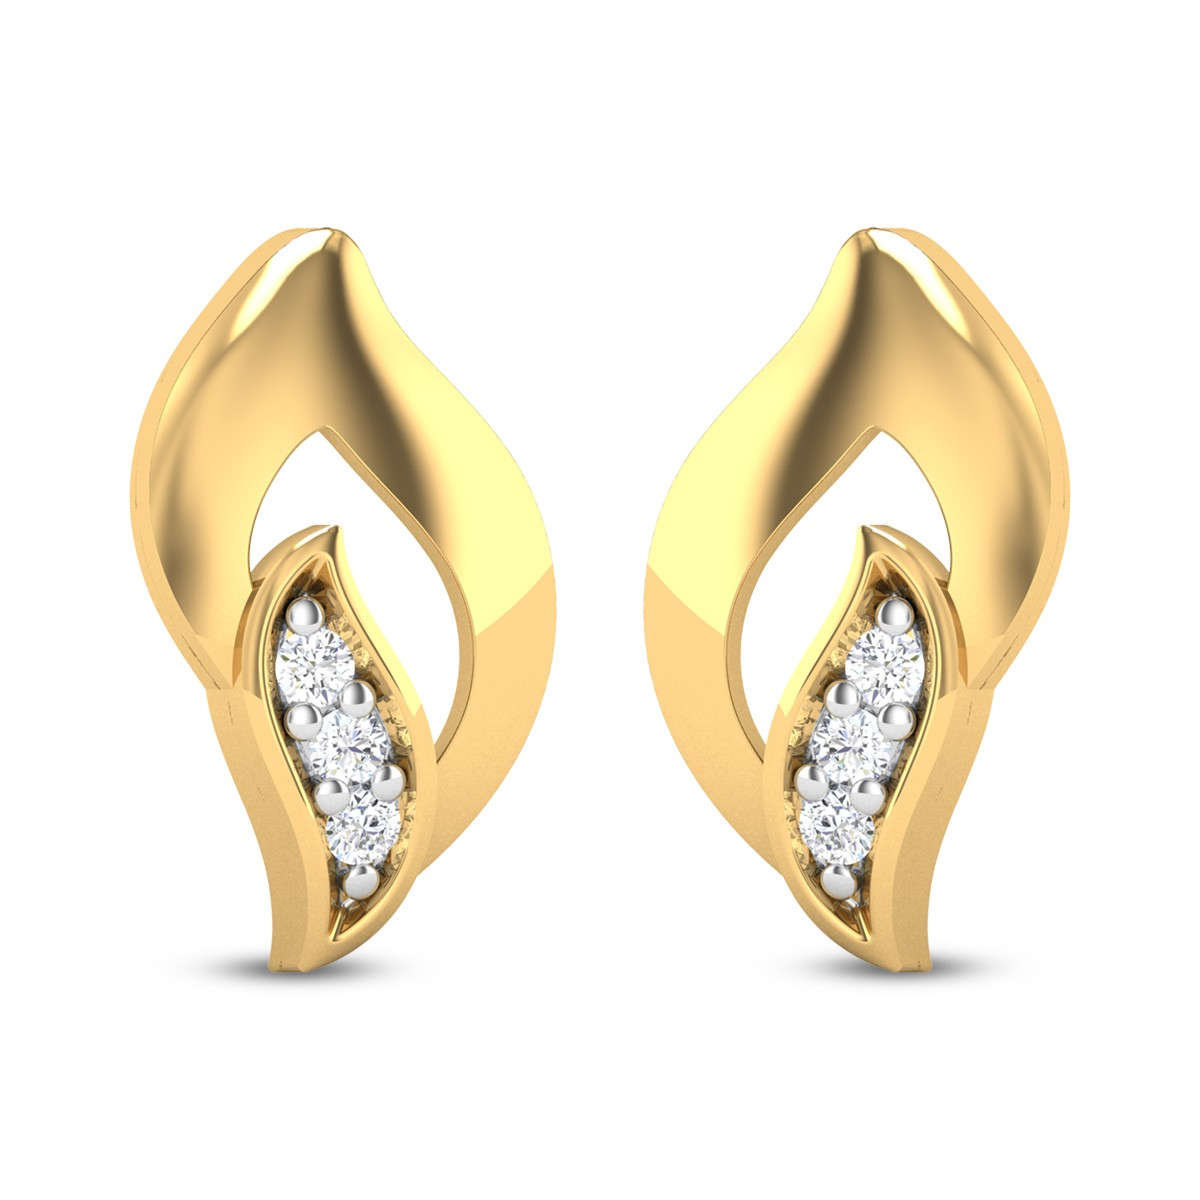 Millia Diamond Earrings